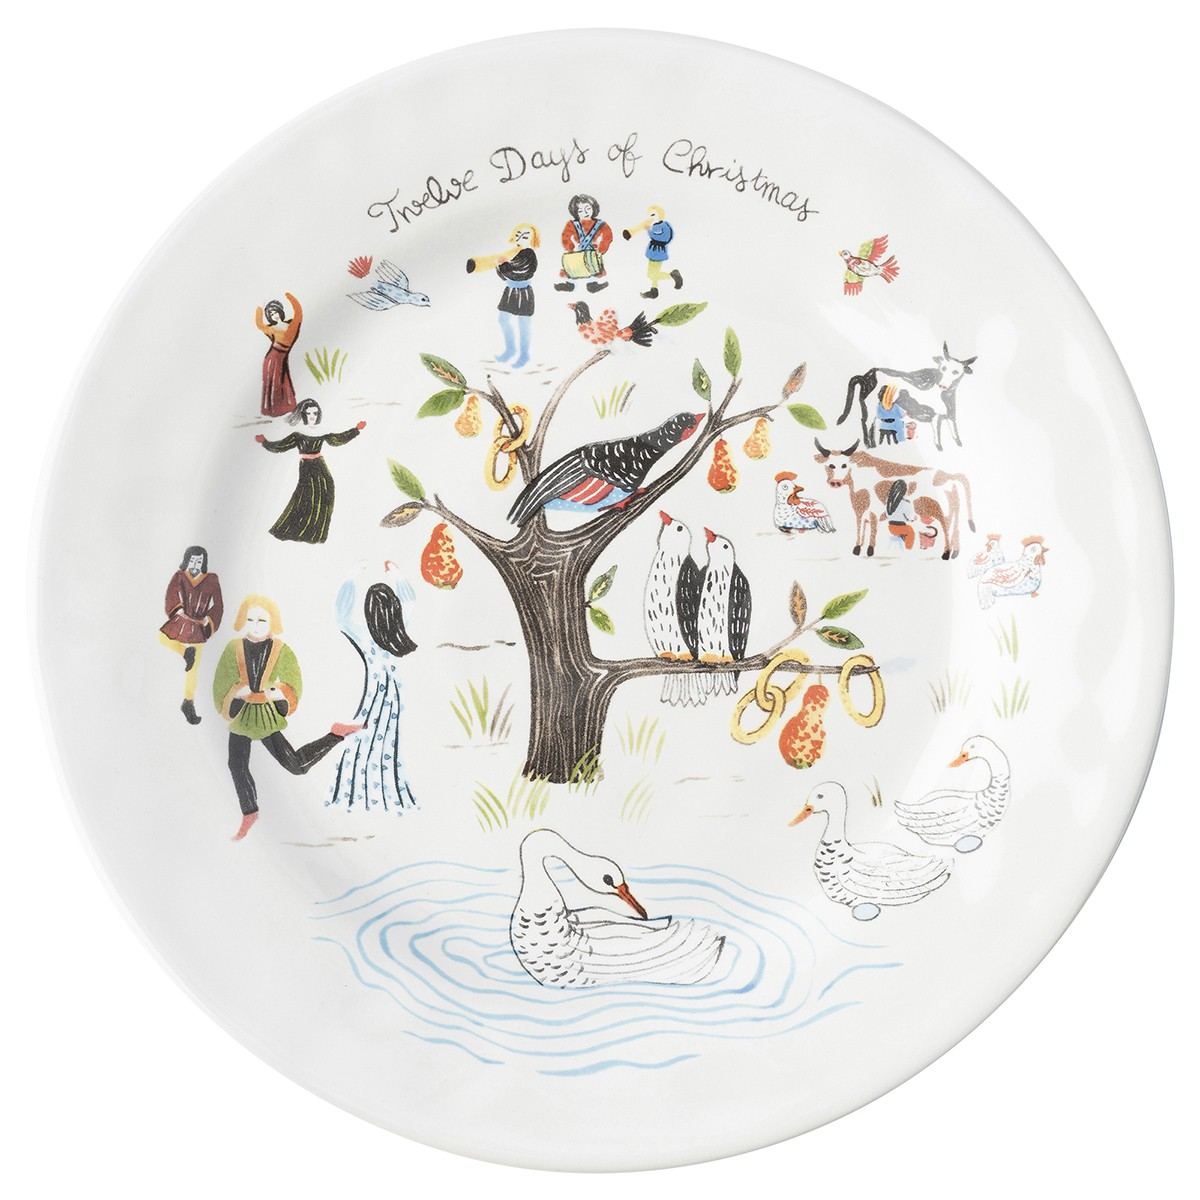 juliska-twelve-days-of-christmas-dessert-plate-9-in-cd02.88.jpg